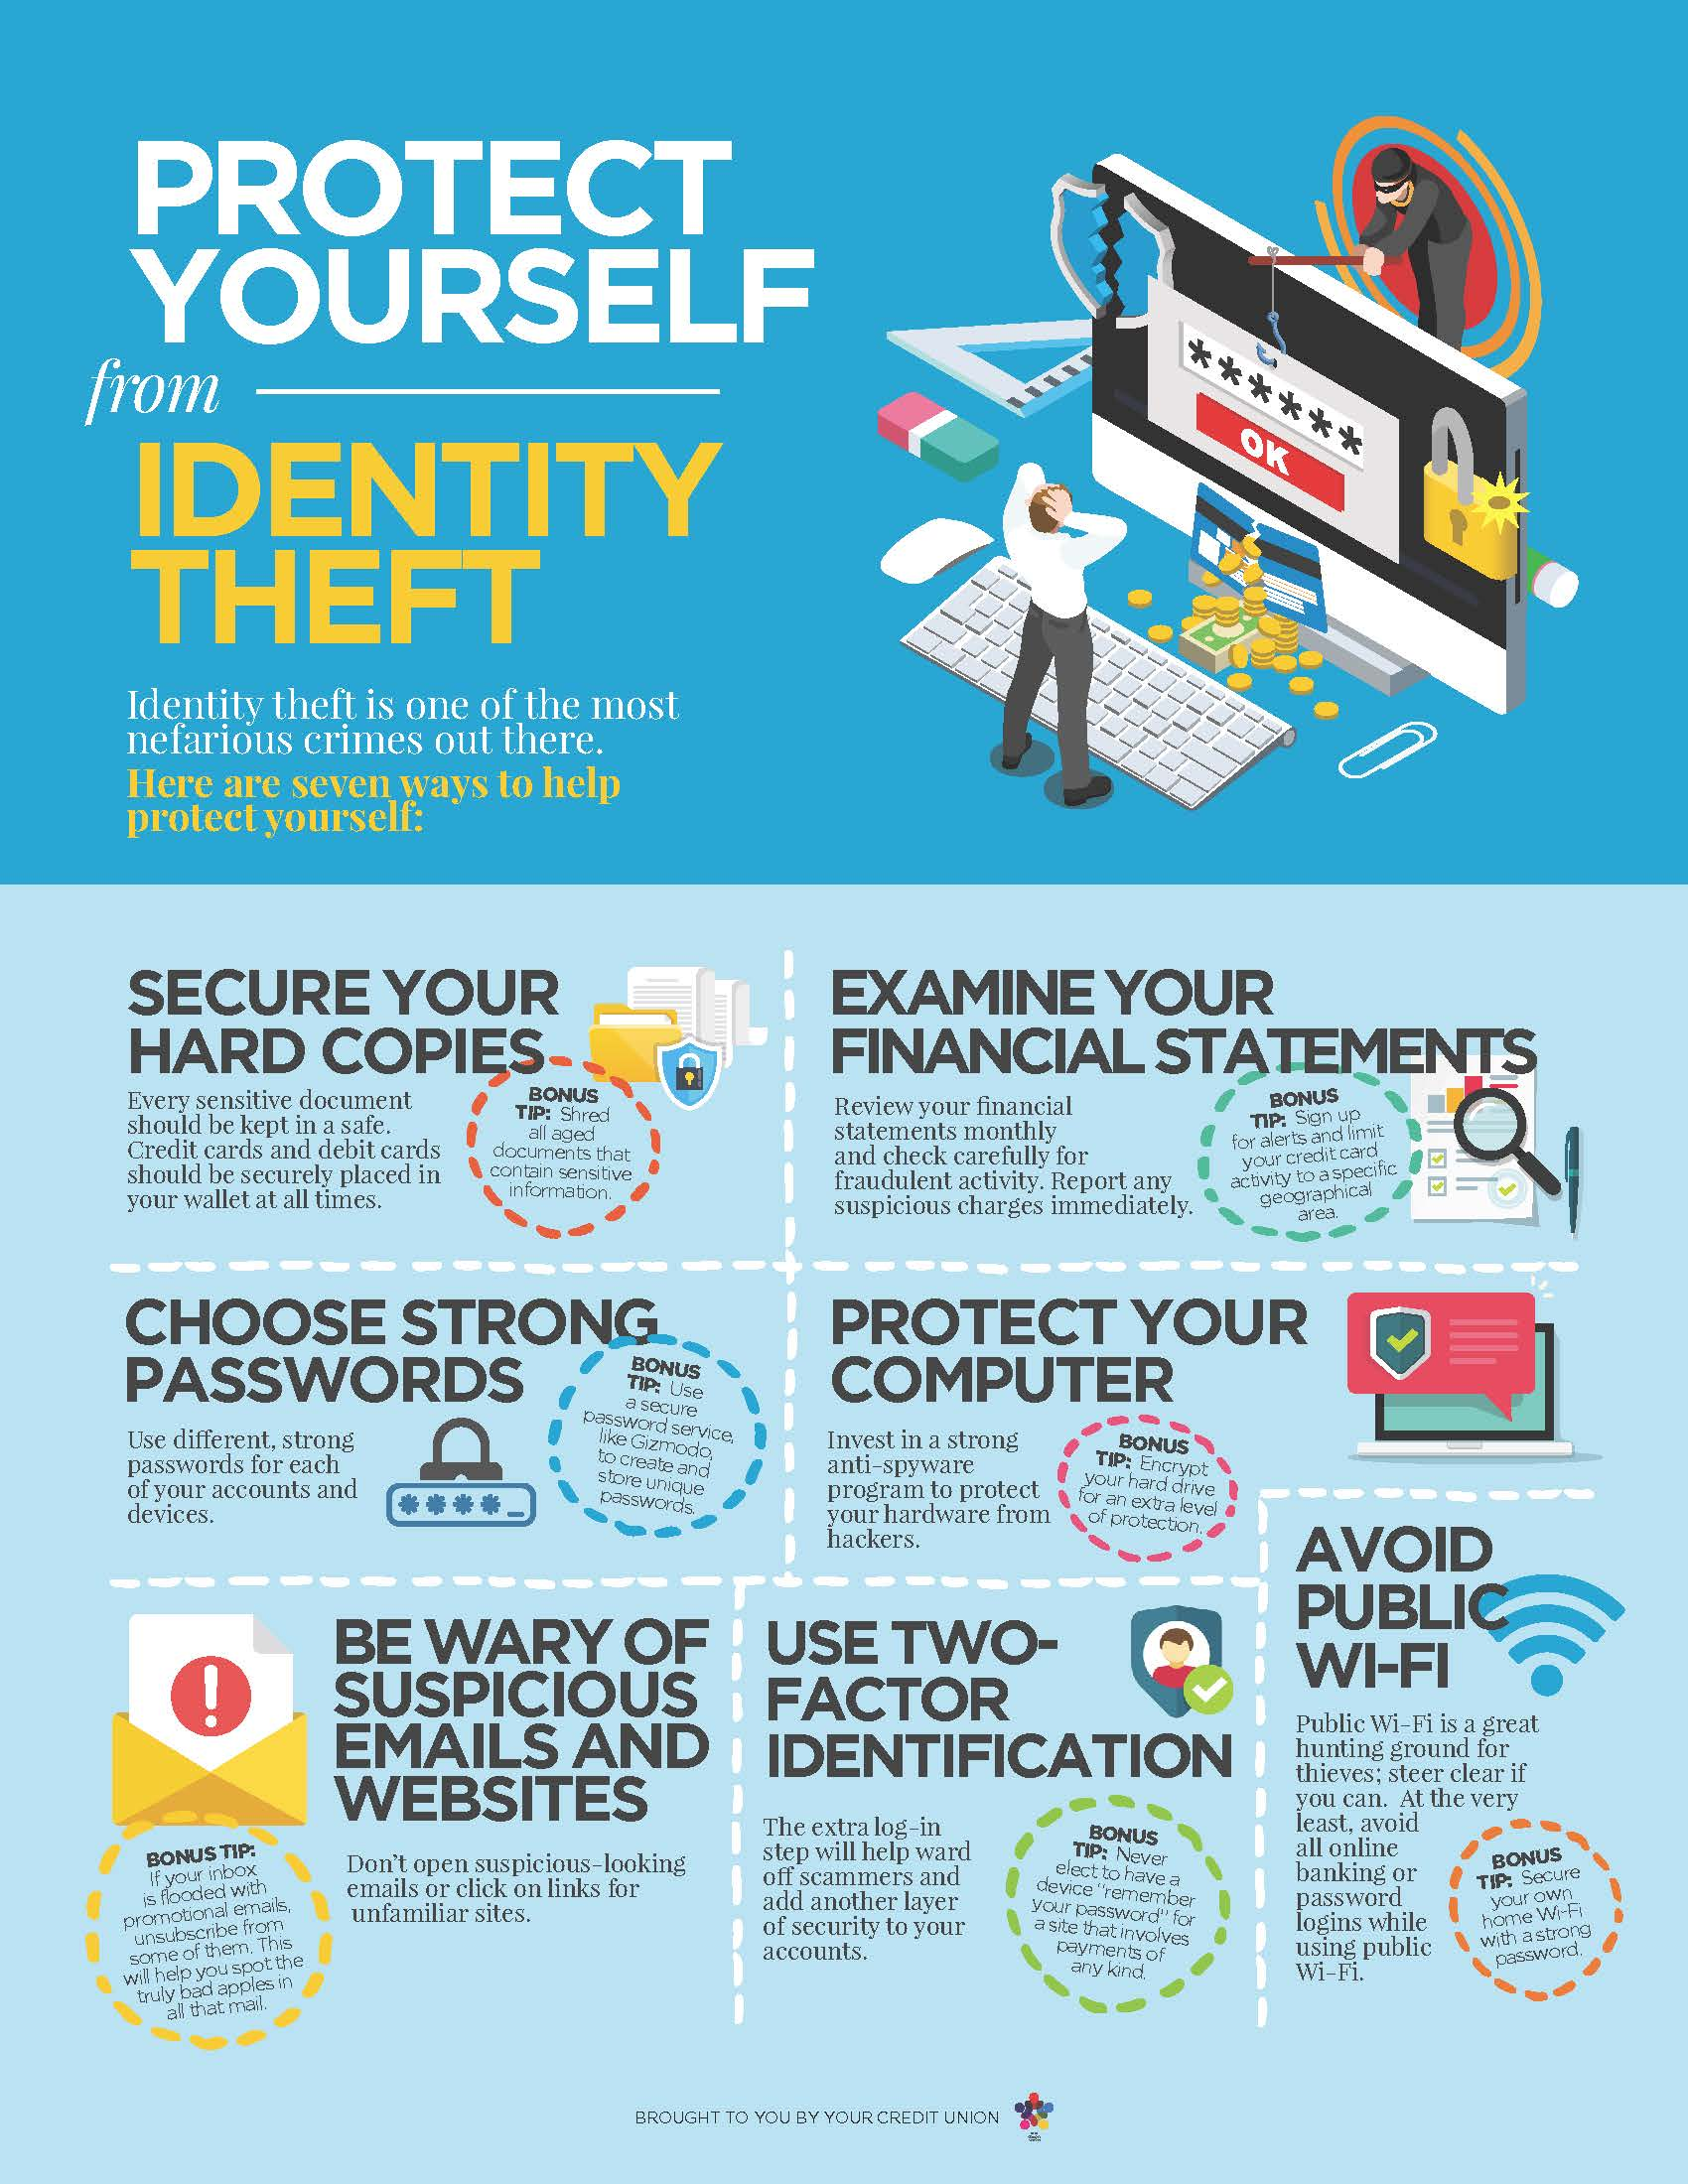 Protect yourself from identity theft - Matadors Community CU